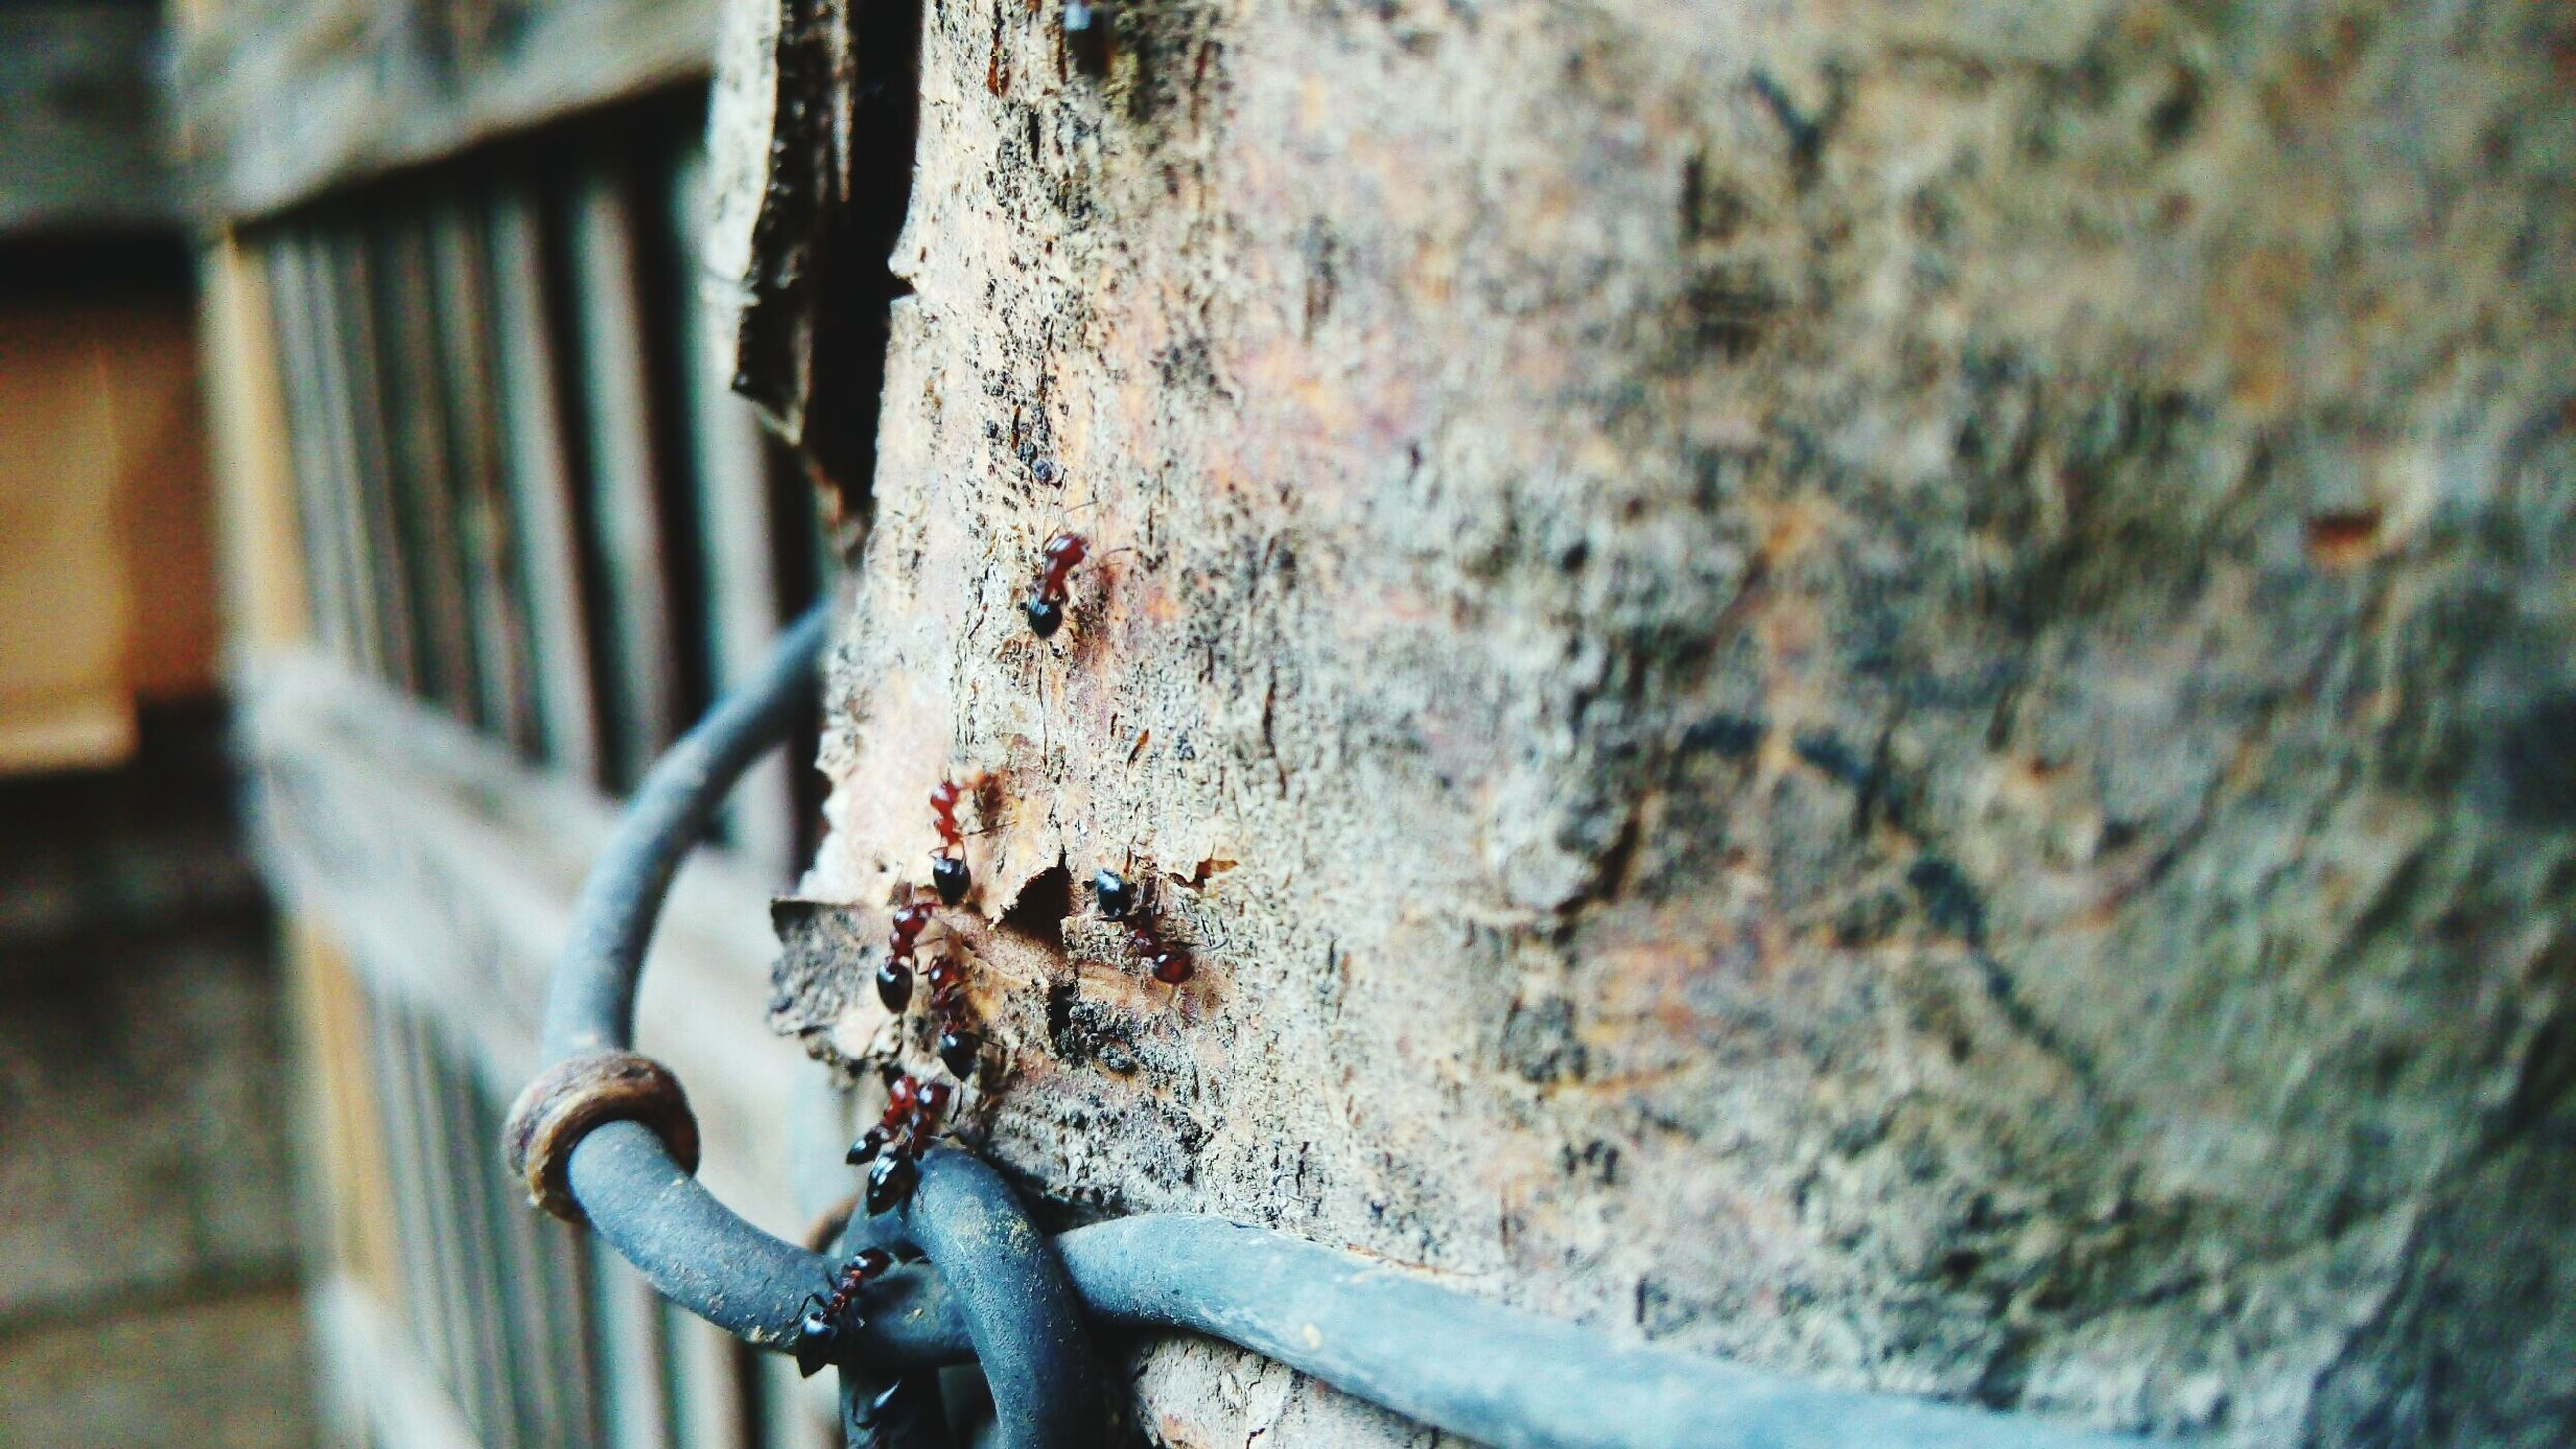 metal, focus on foreground, rusty, close-up, old, weathered, metallic, deterioration, damaged, wall - building feature, built structure, selective focus, abandoned, railing, chain, day, protection, fence, run-down, architecture